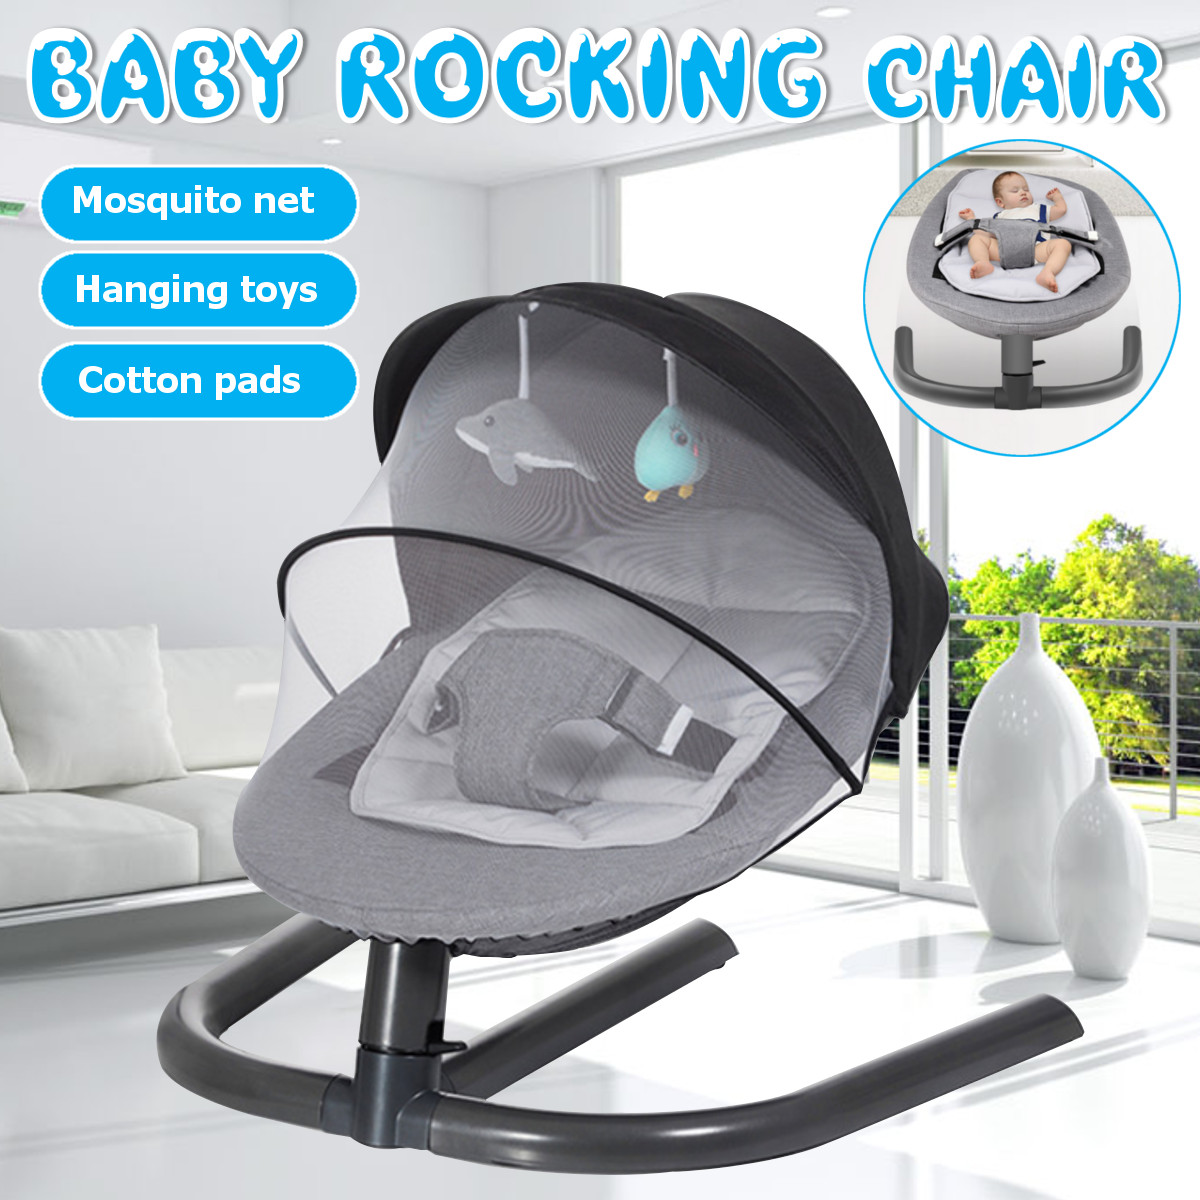 H583dd598376c49e184a8b86e9556c5f9o Newborn Electric Swing Multifunctional  Baby Bouncer Cradle Rocking Chair With Mosquito Net Cradle Crib Sleeping Safety Basket